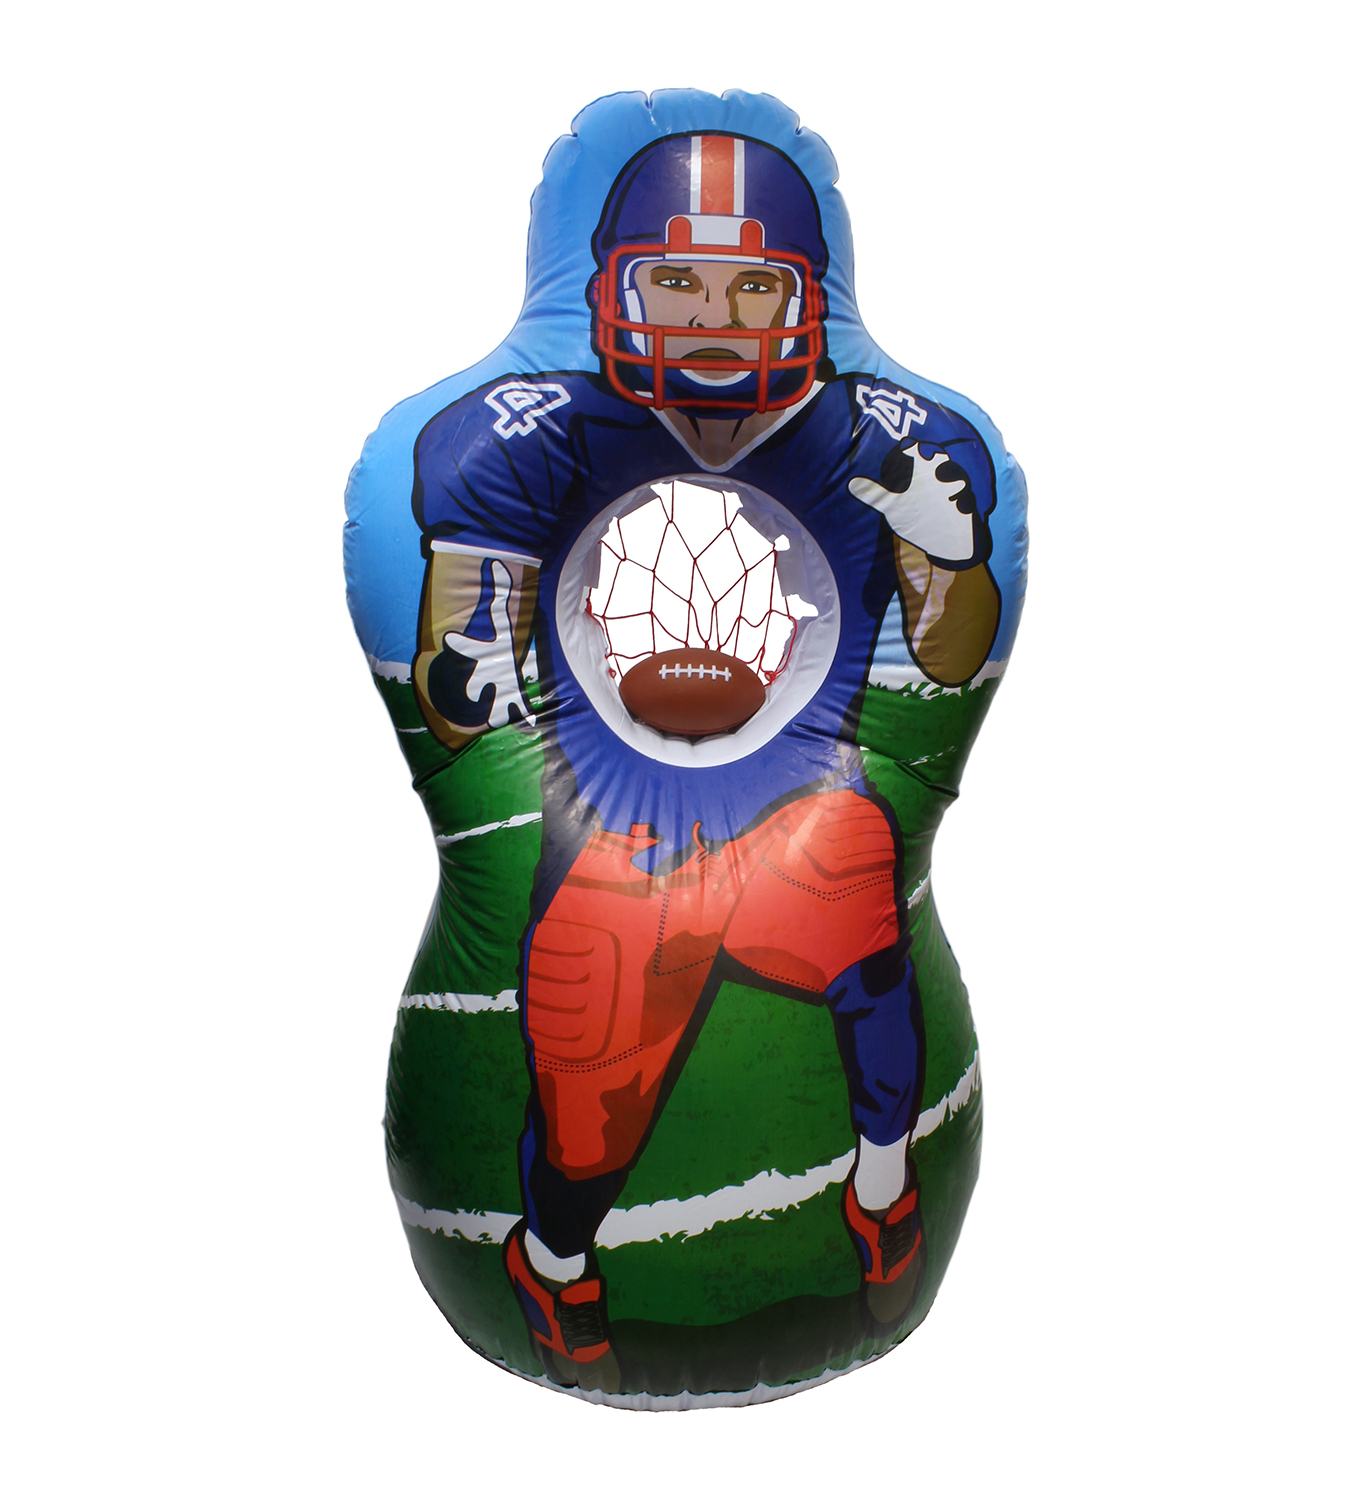 Get Out! Football Practice Inflatable QB Throwing Target and Mini Football Set 5 Feet Tall by Get Out!